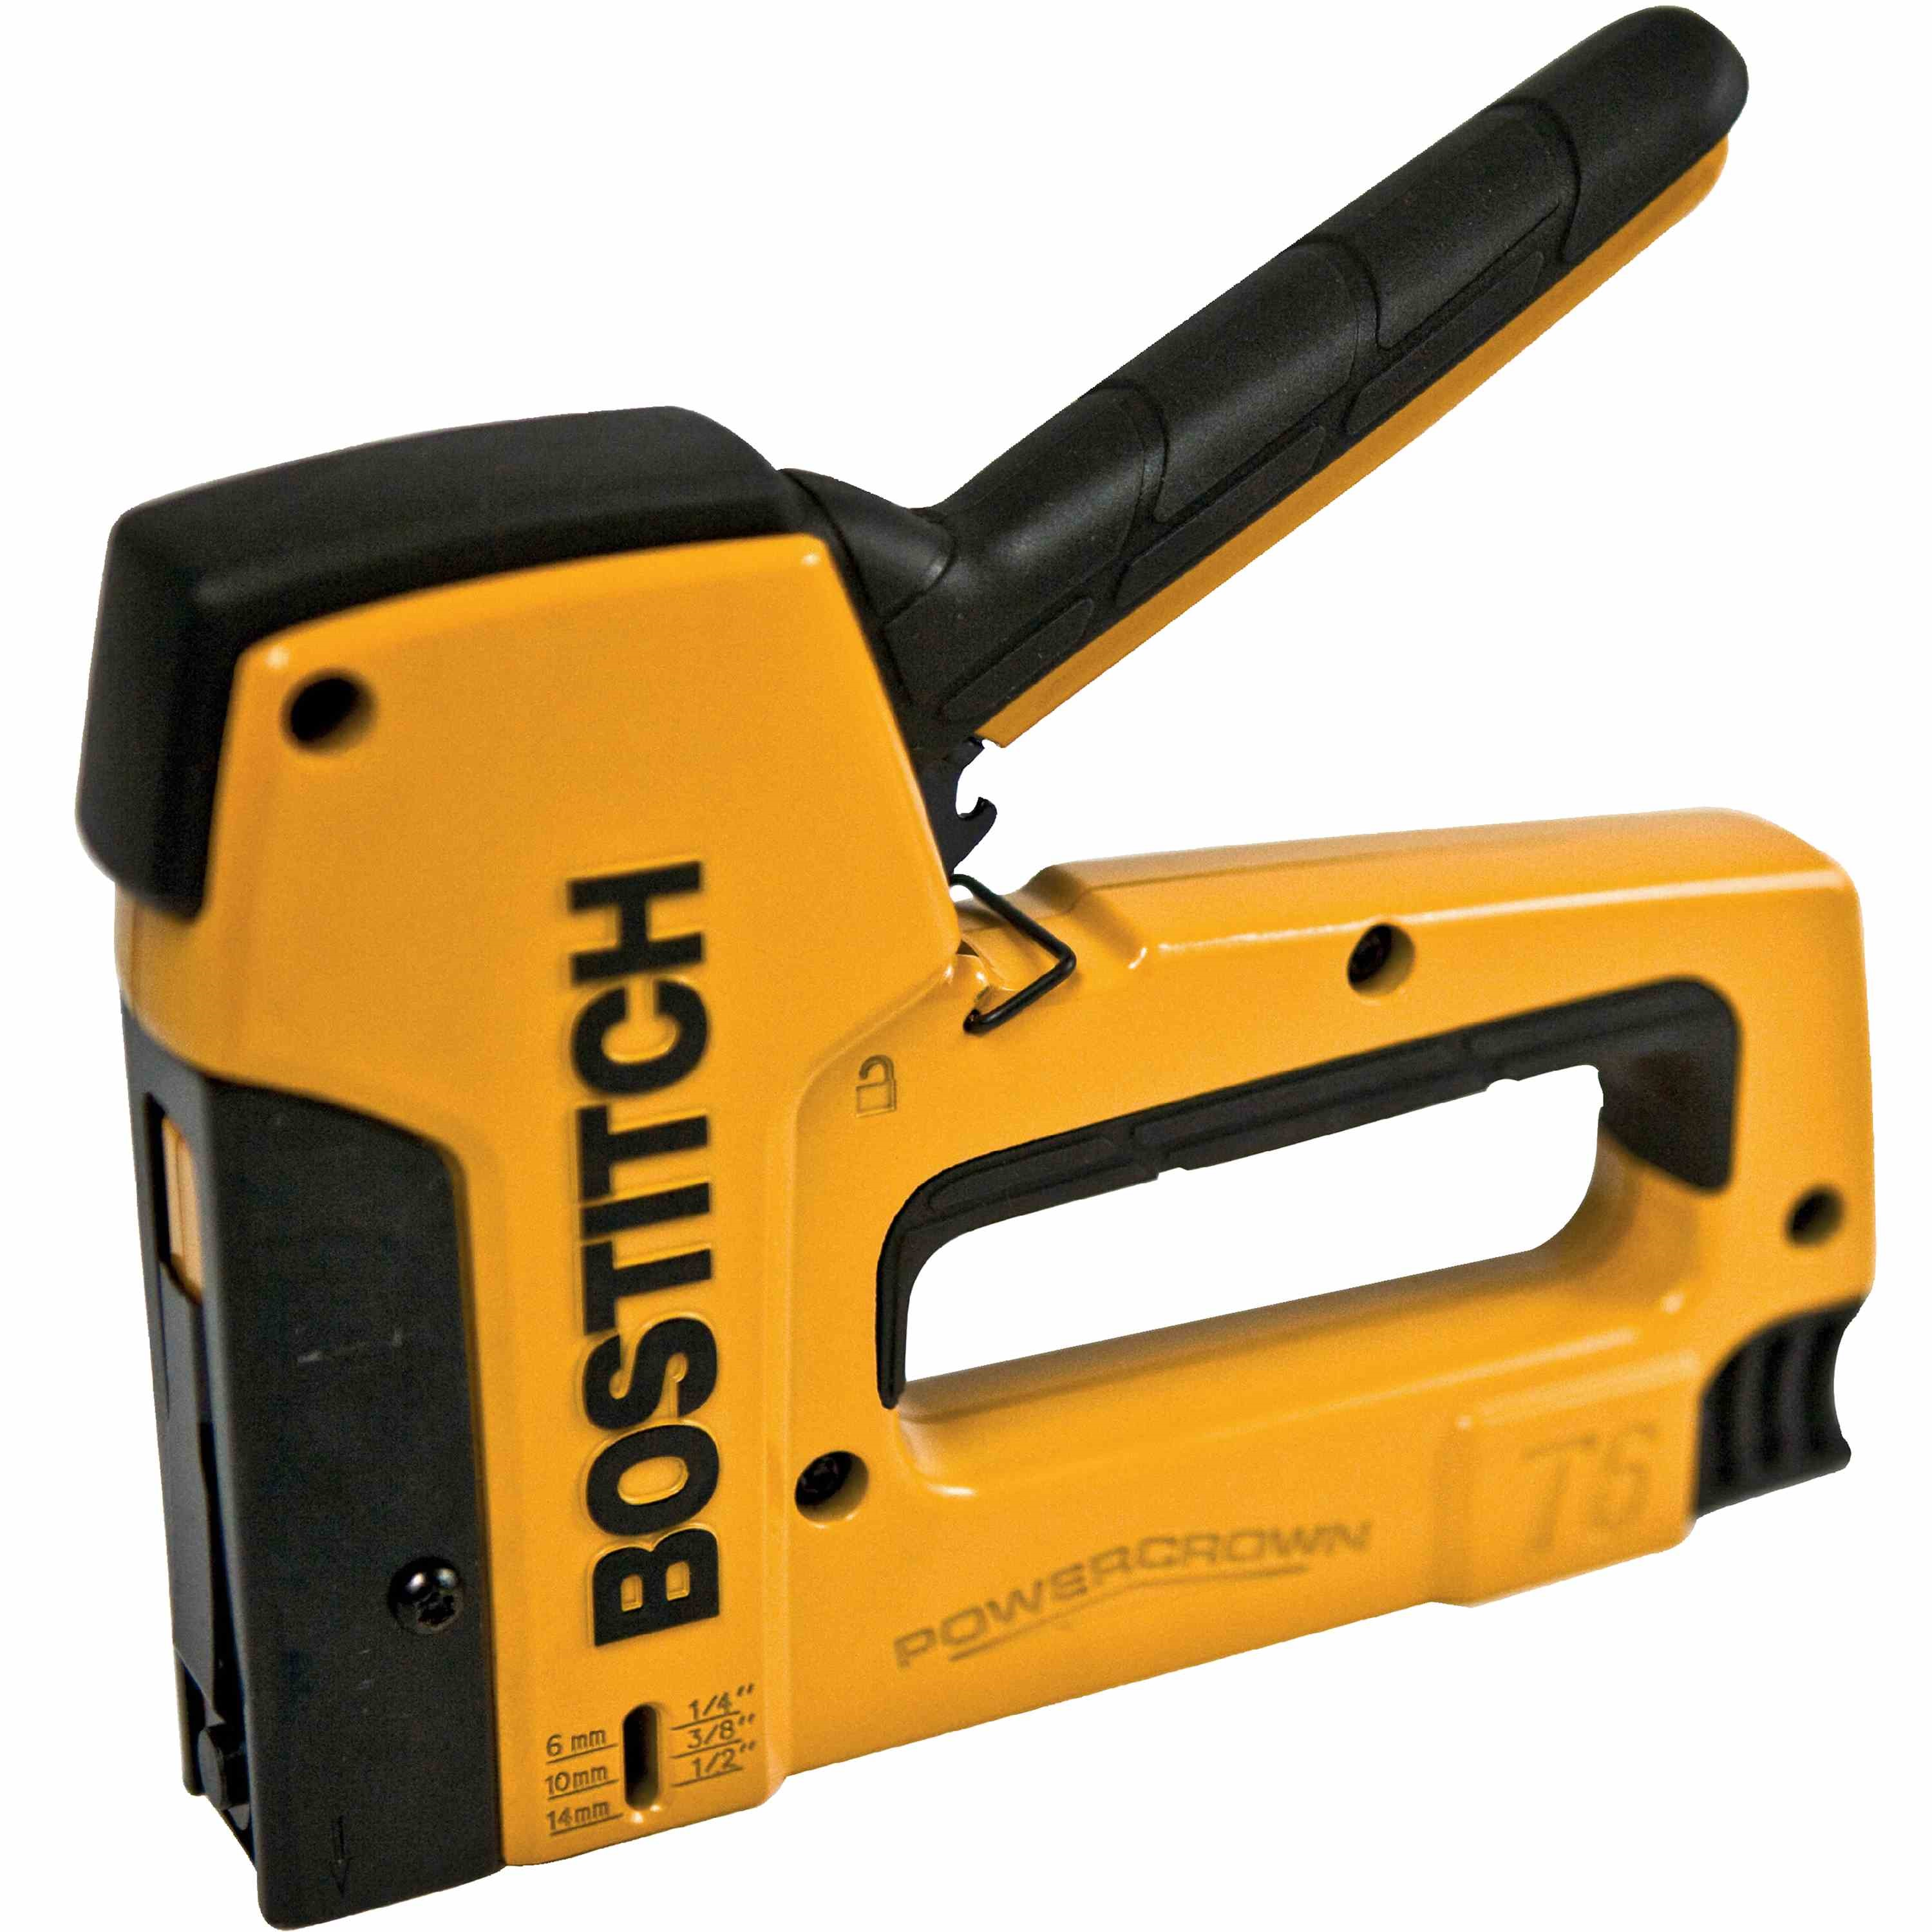 Bostitch - Heavy Duty PowerCrown Tacker - T6-8OC2